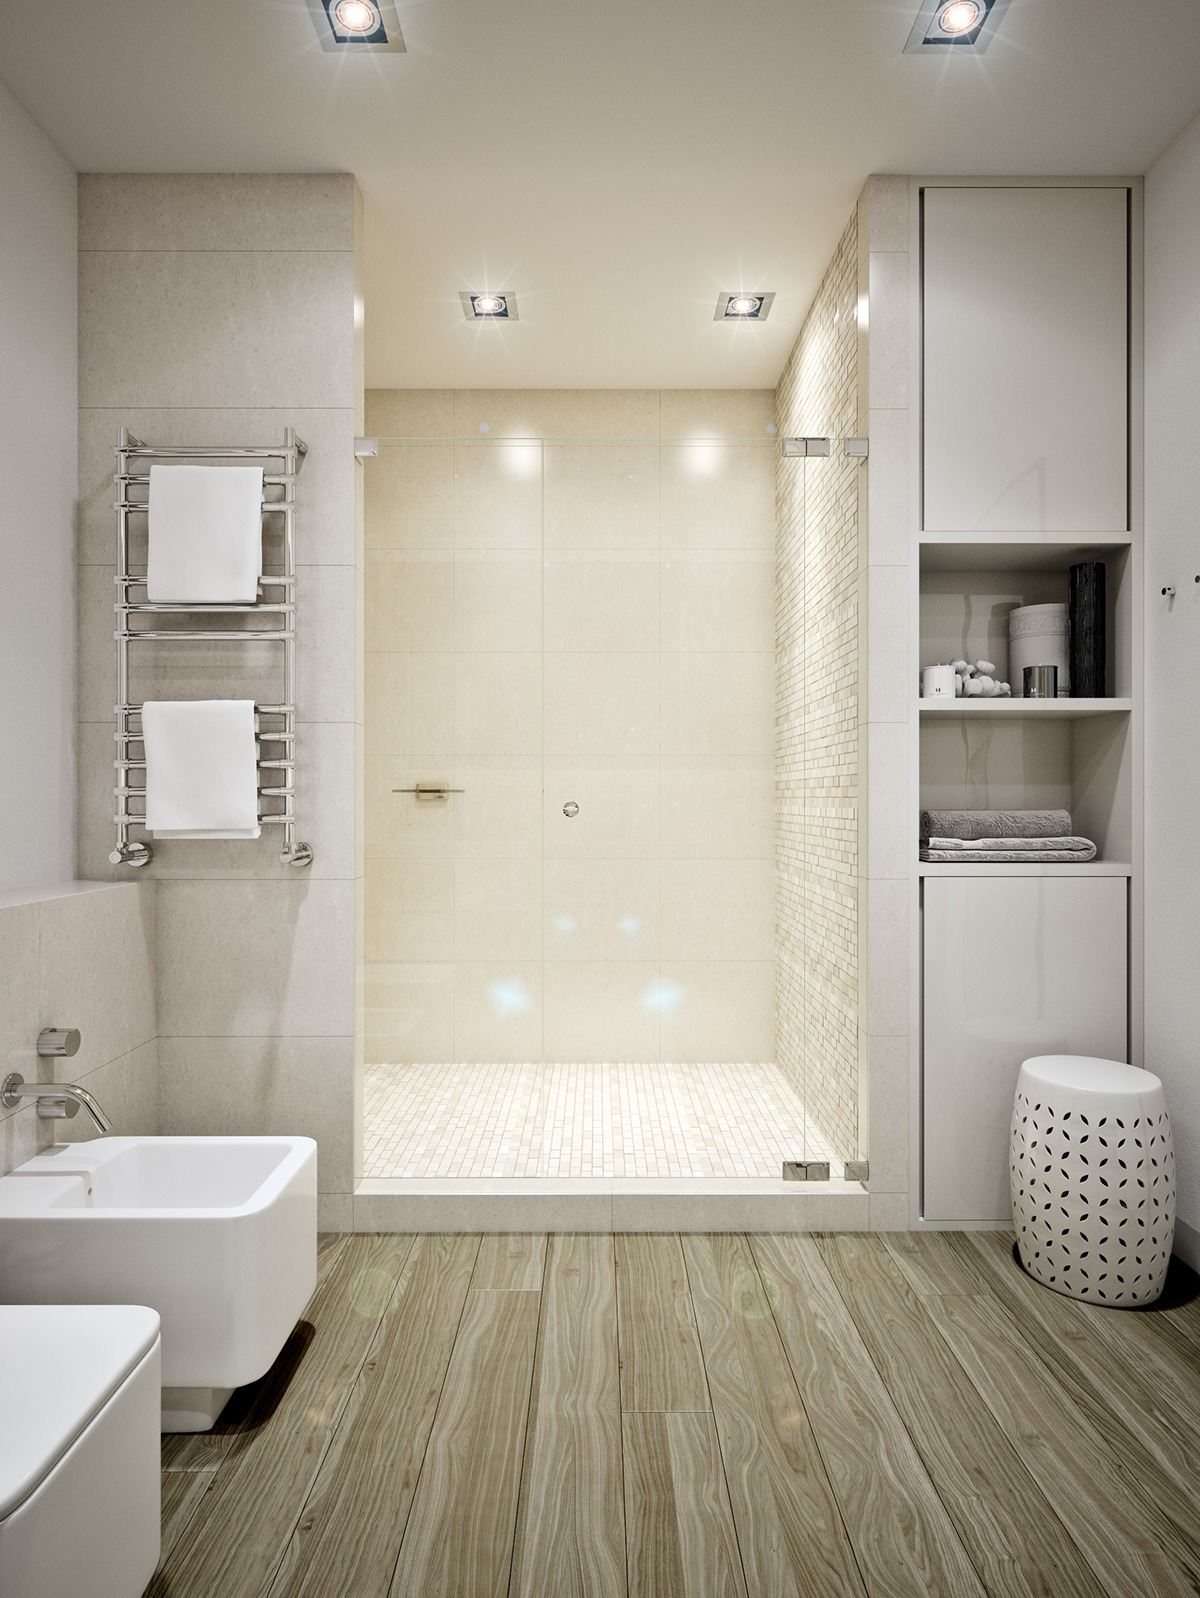 Small Apartment Design For Couples With White Color Scheme ... on Bathroom Ideas Apartment  id=93922